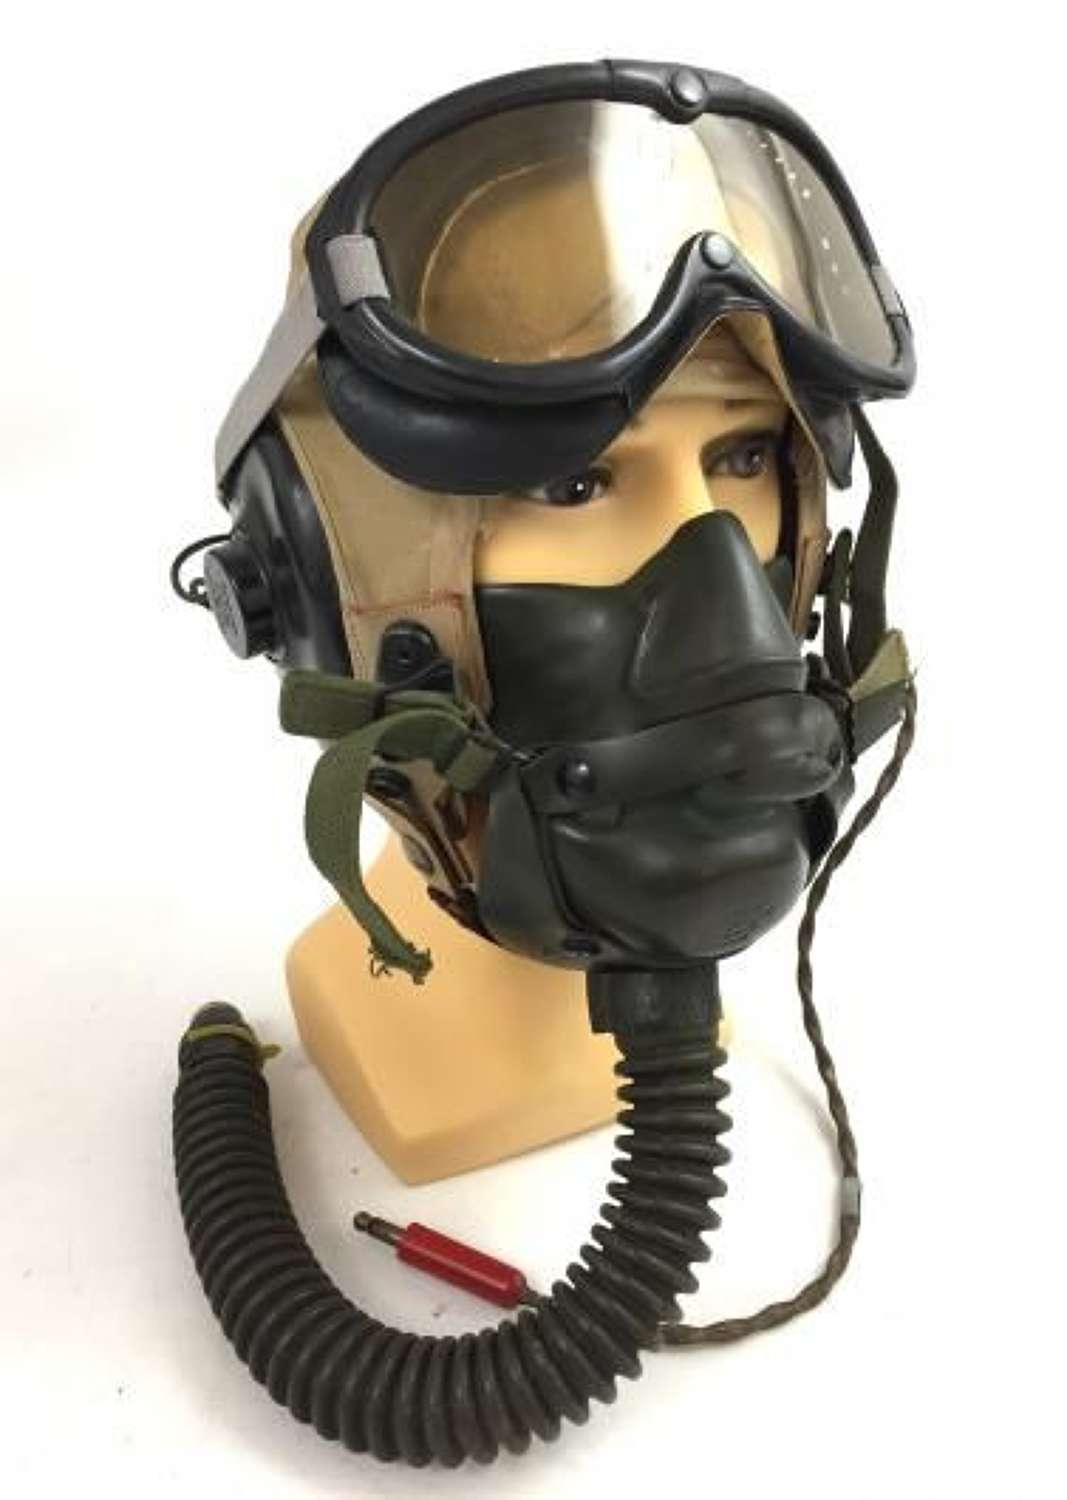 Original WW2 USAAF AN-H-15 Flying Helmet, A14 Oxygen Mask and B-8 Flying Goggles Set